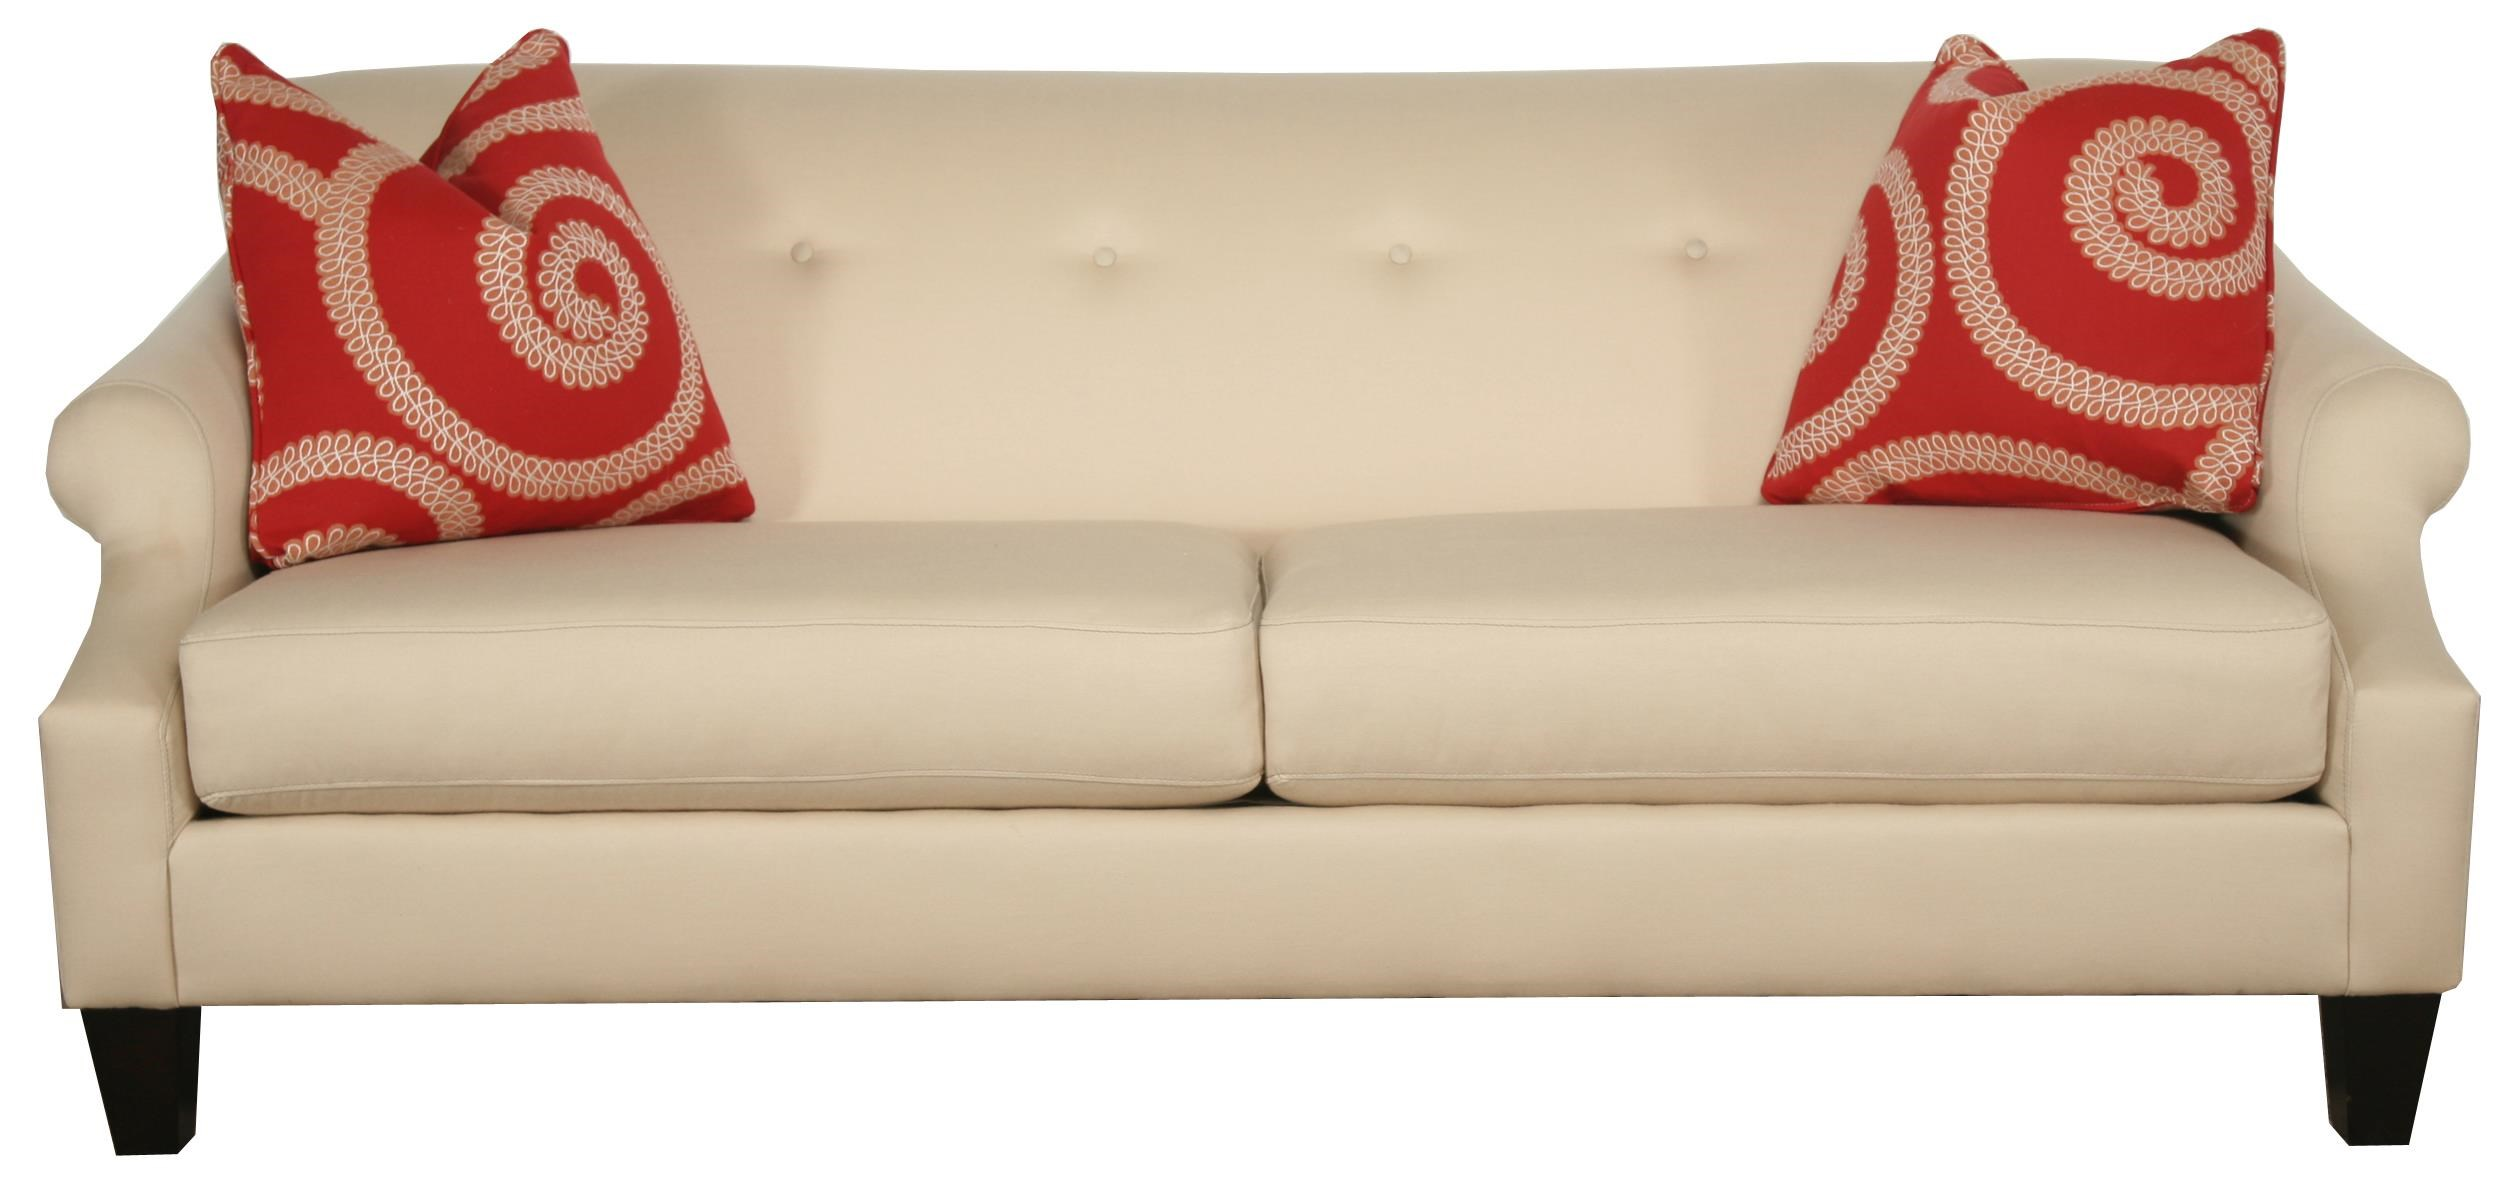 153 Two Cushion Sofa With Rolled Arms And Button Tufting By Bauhaus